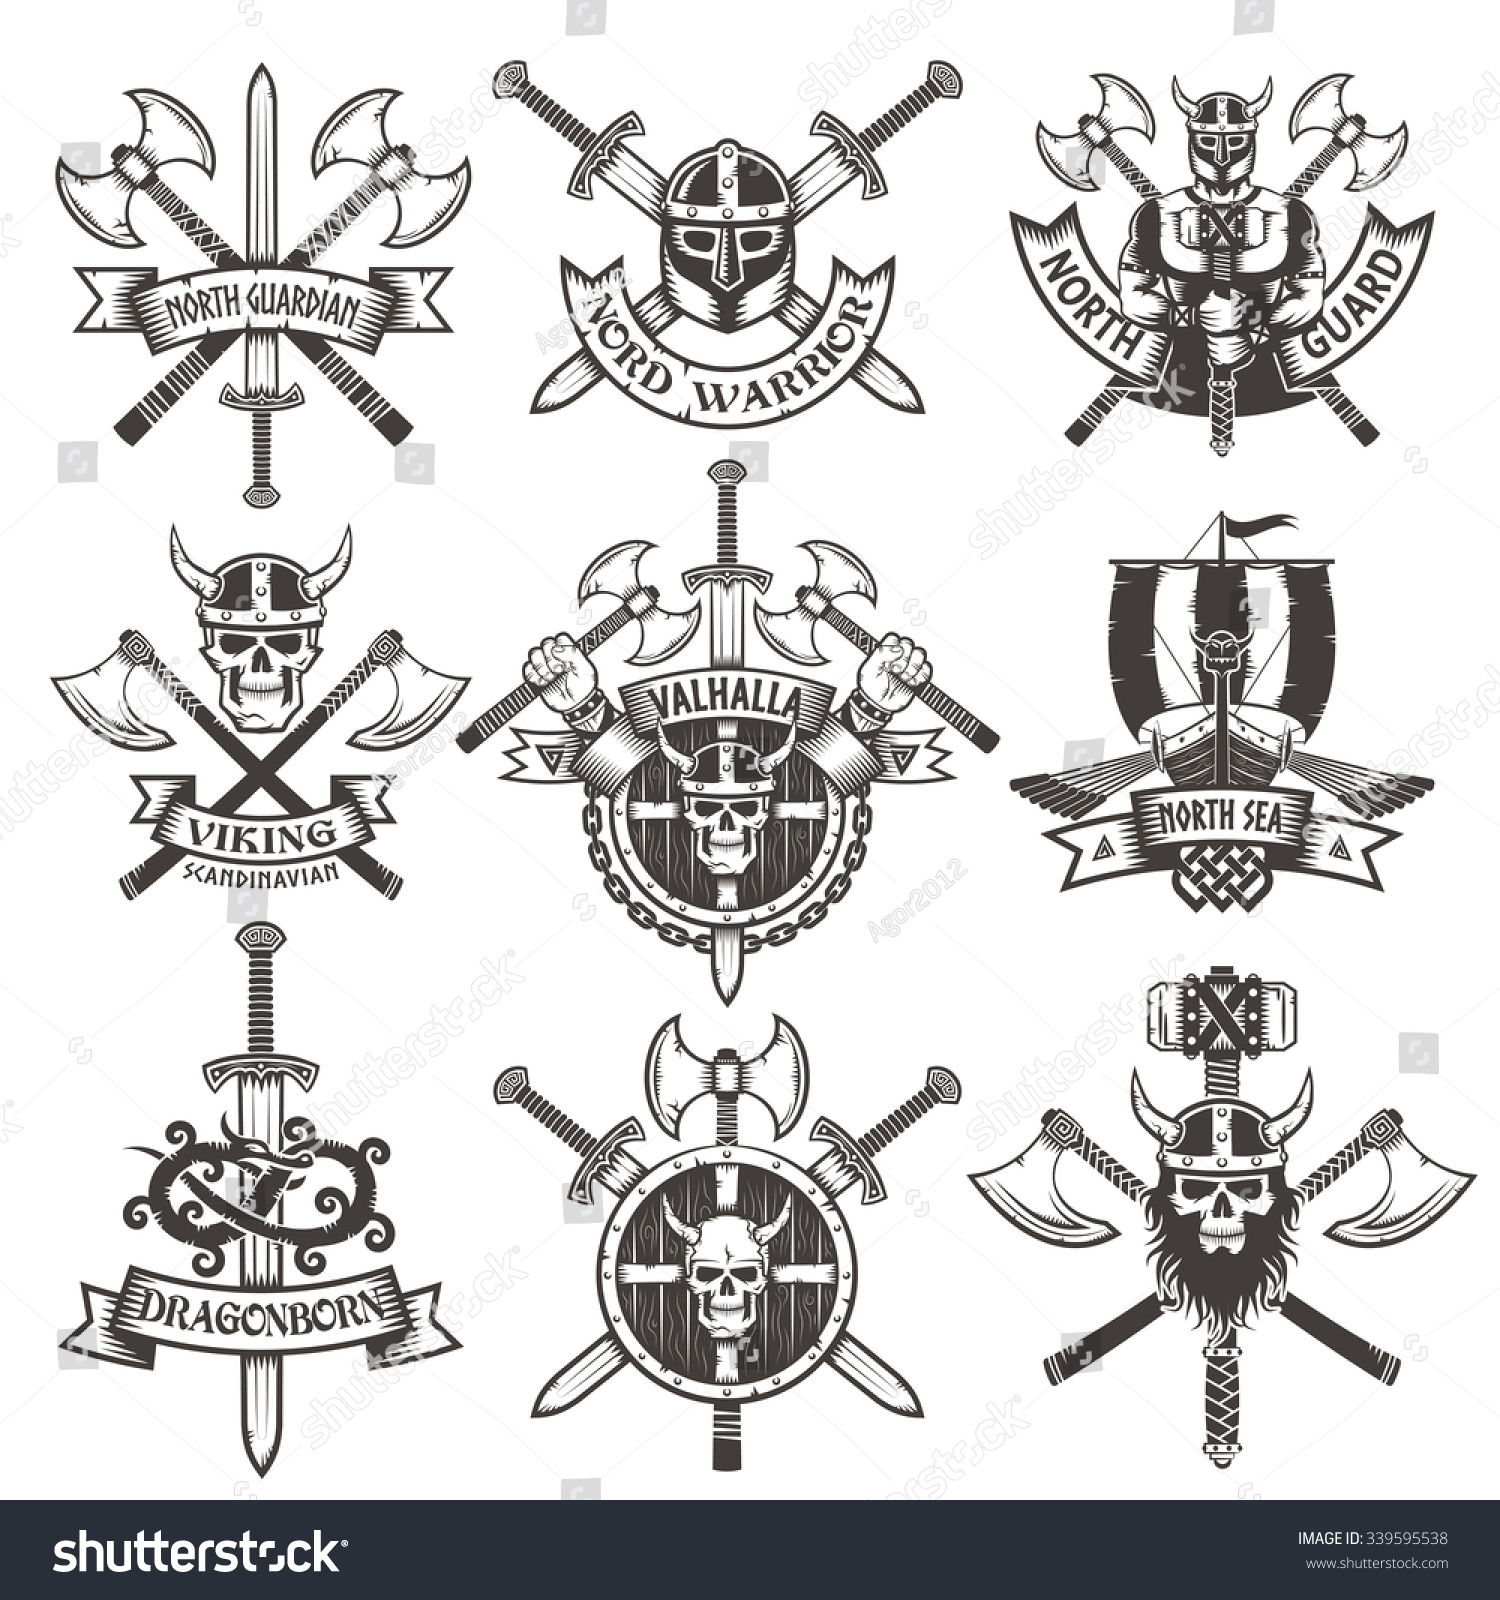 English Heraldry Symbols And Meanings